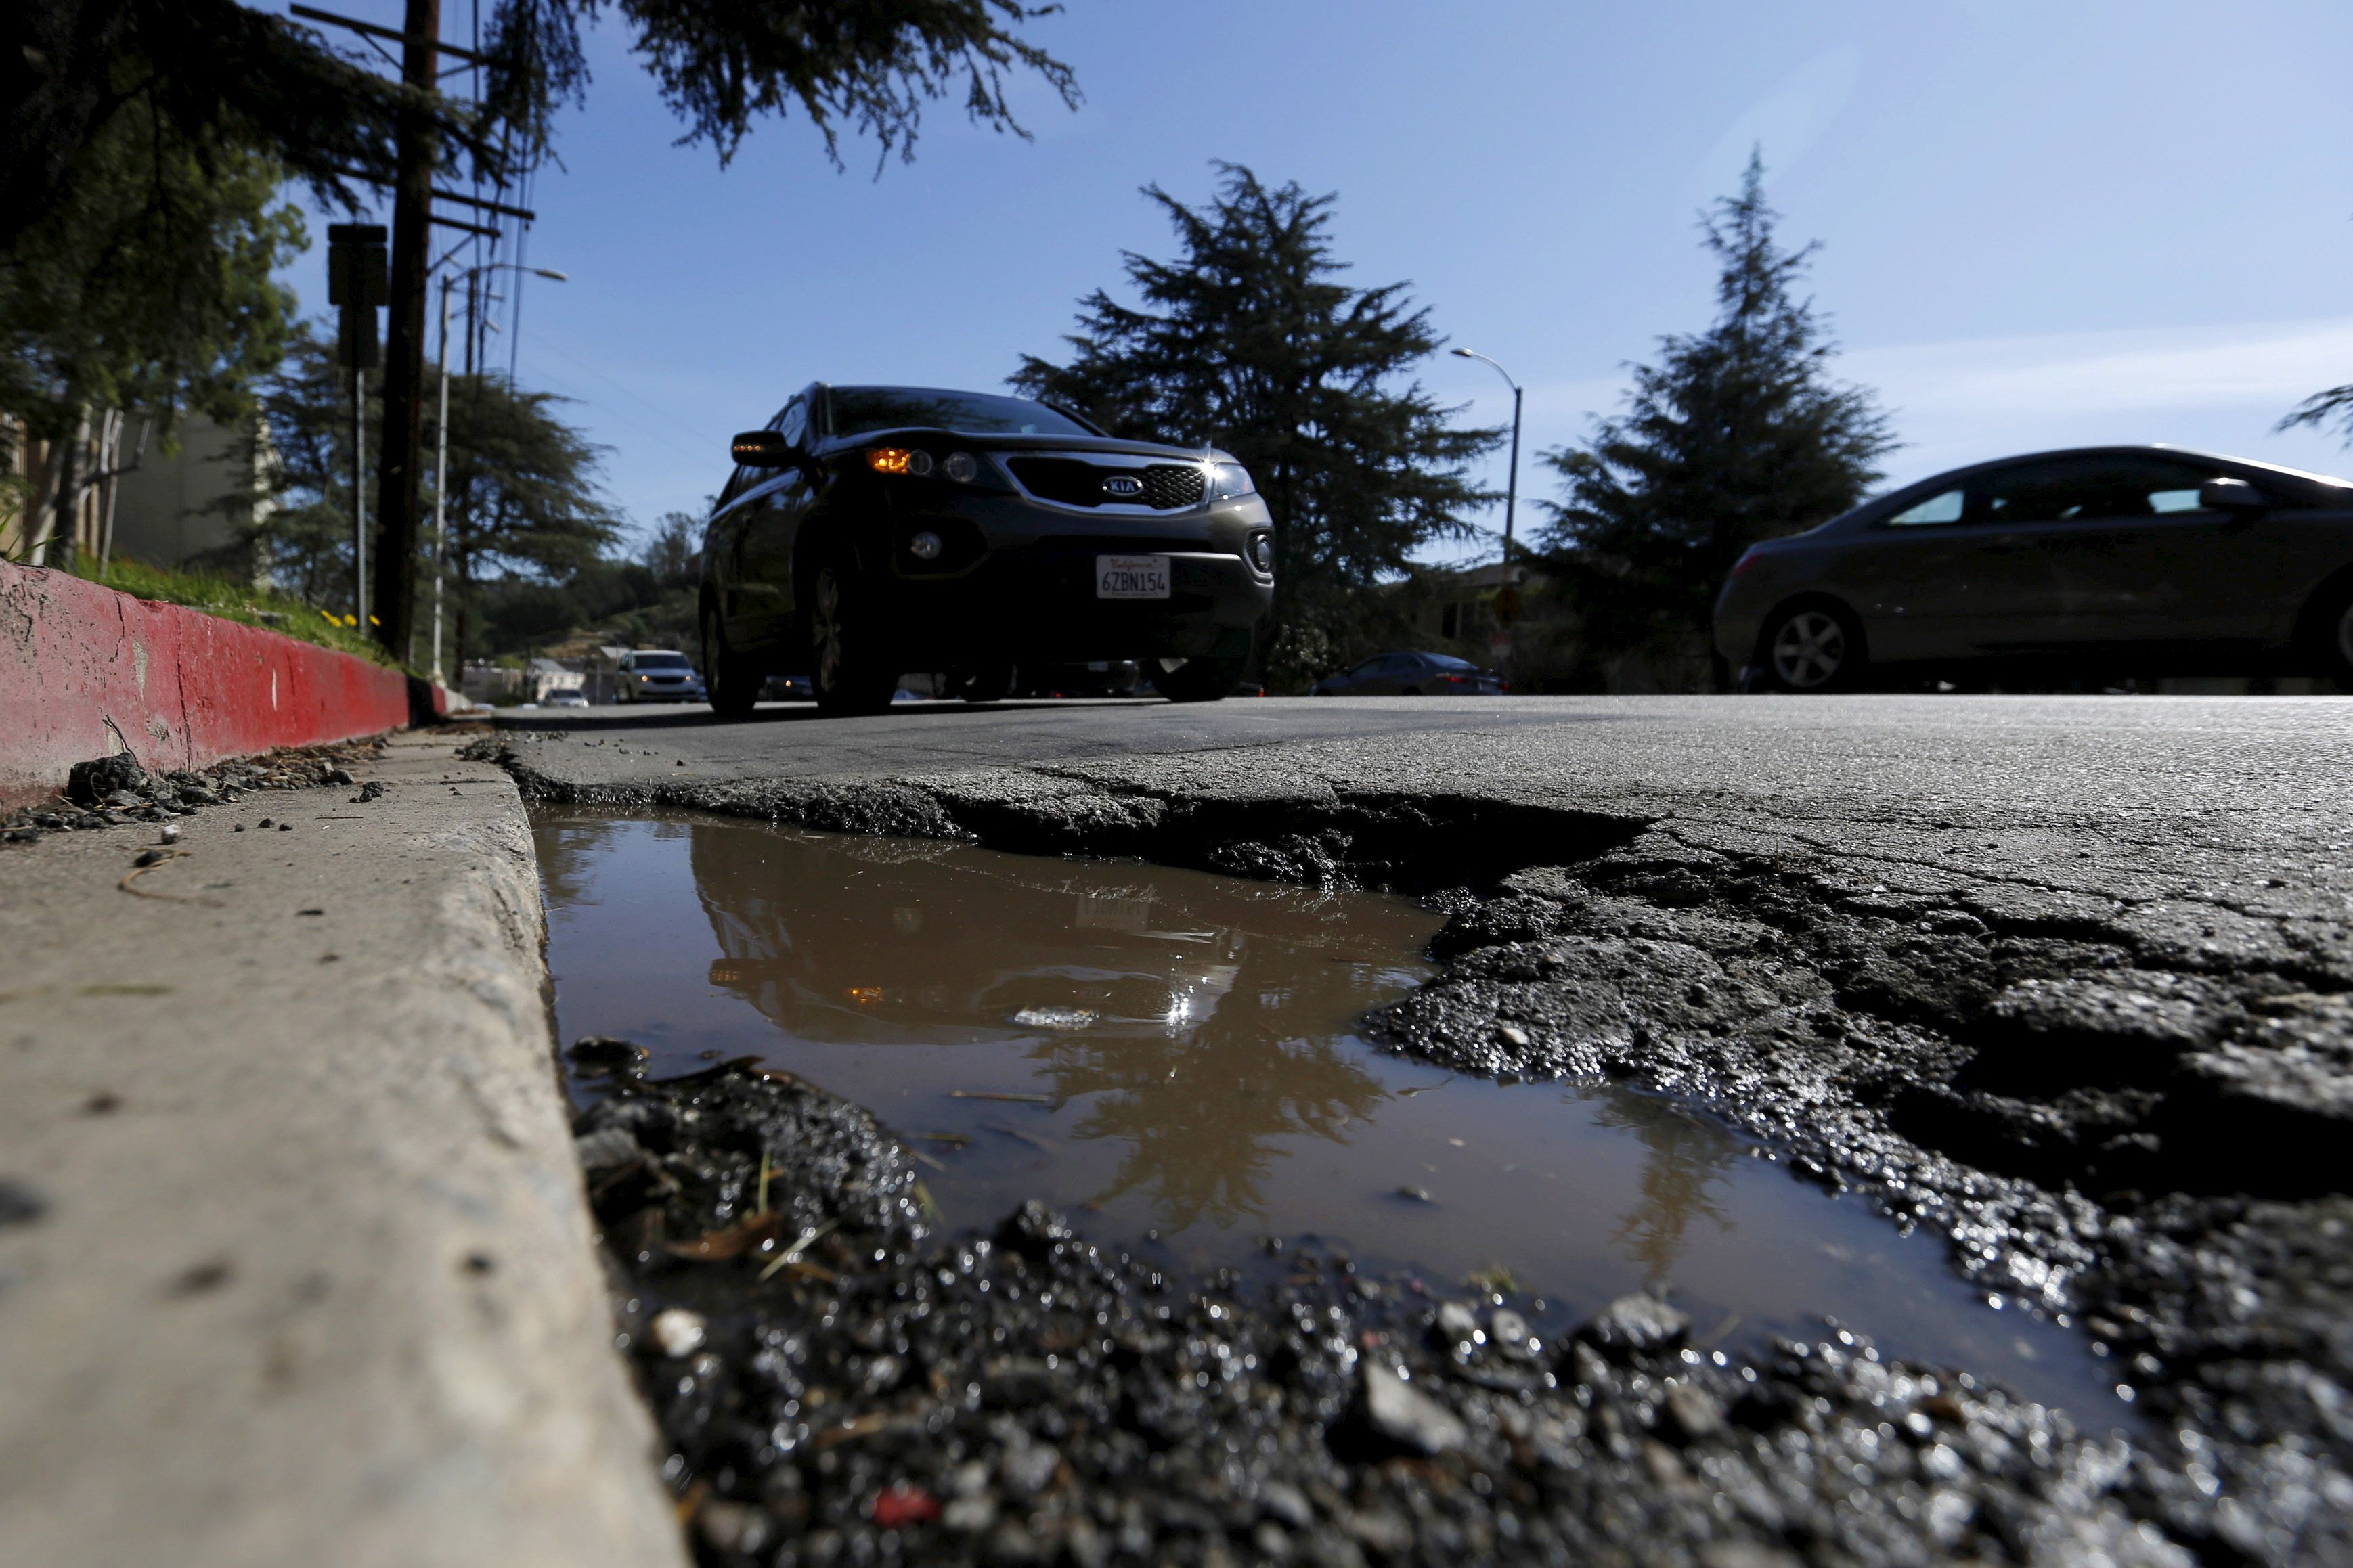 A pothole is pictured on the street of Los Angeles, California February 12, 2016. An estimated 65 percent of U.S. roads are in poor condition, according to the U.S. Department of Transportation, with the transportation infrastructure system rated 12th in the World Economic Forum's 2014-2015 global competitiveness report. Picture taken February 12. To match Insight AUTOS-AUTONOMOUS/INFRASTRUCTURE   REUTERS/Mario Anzuoni